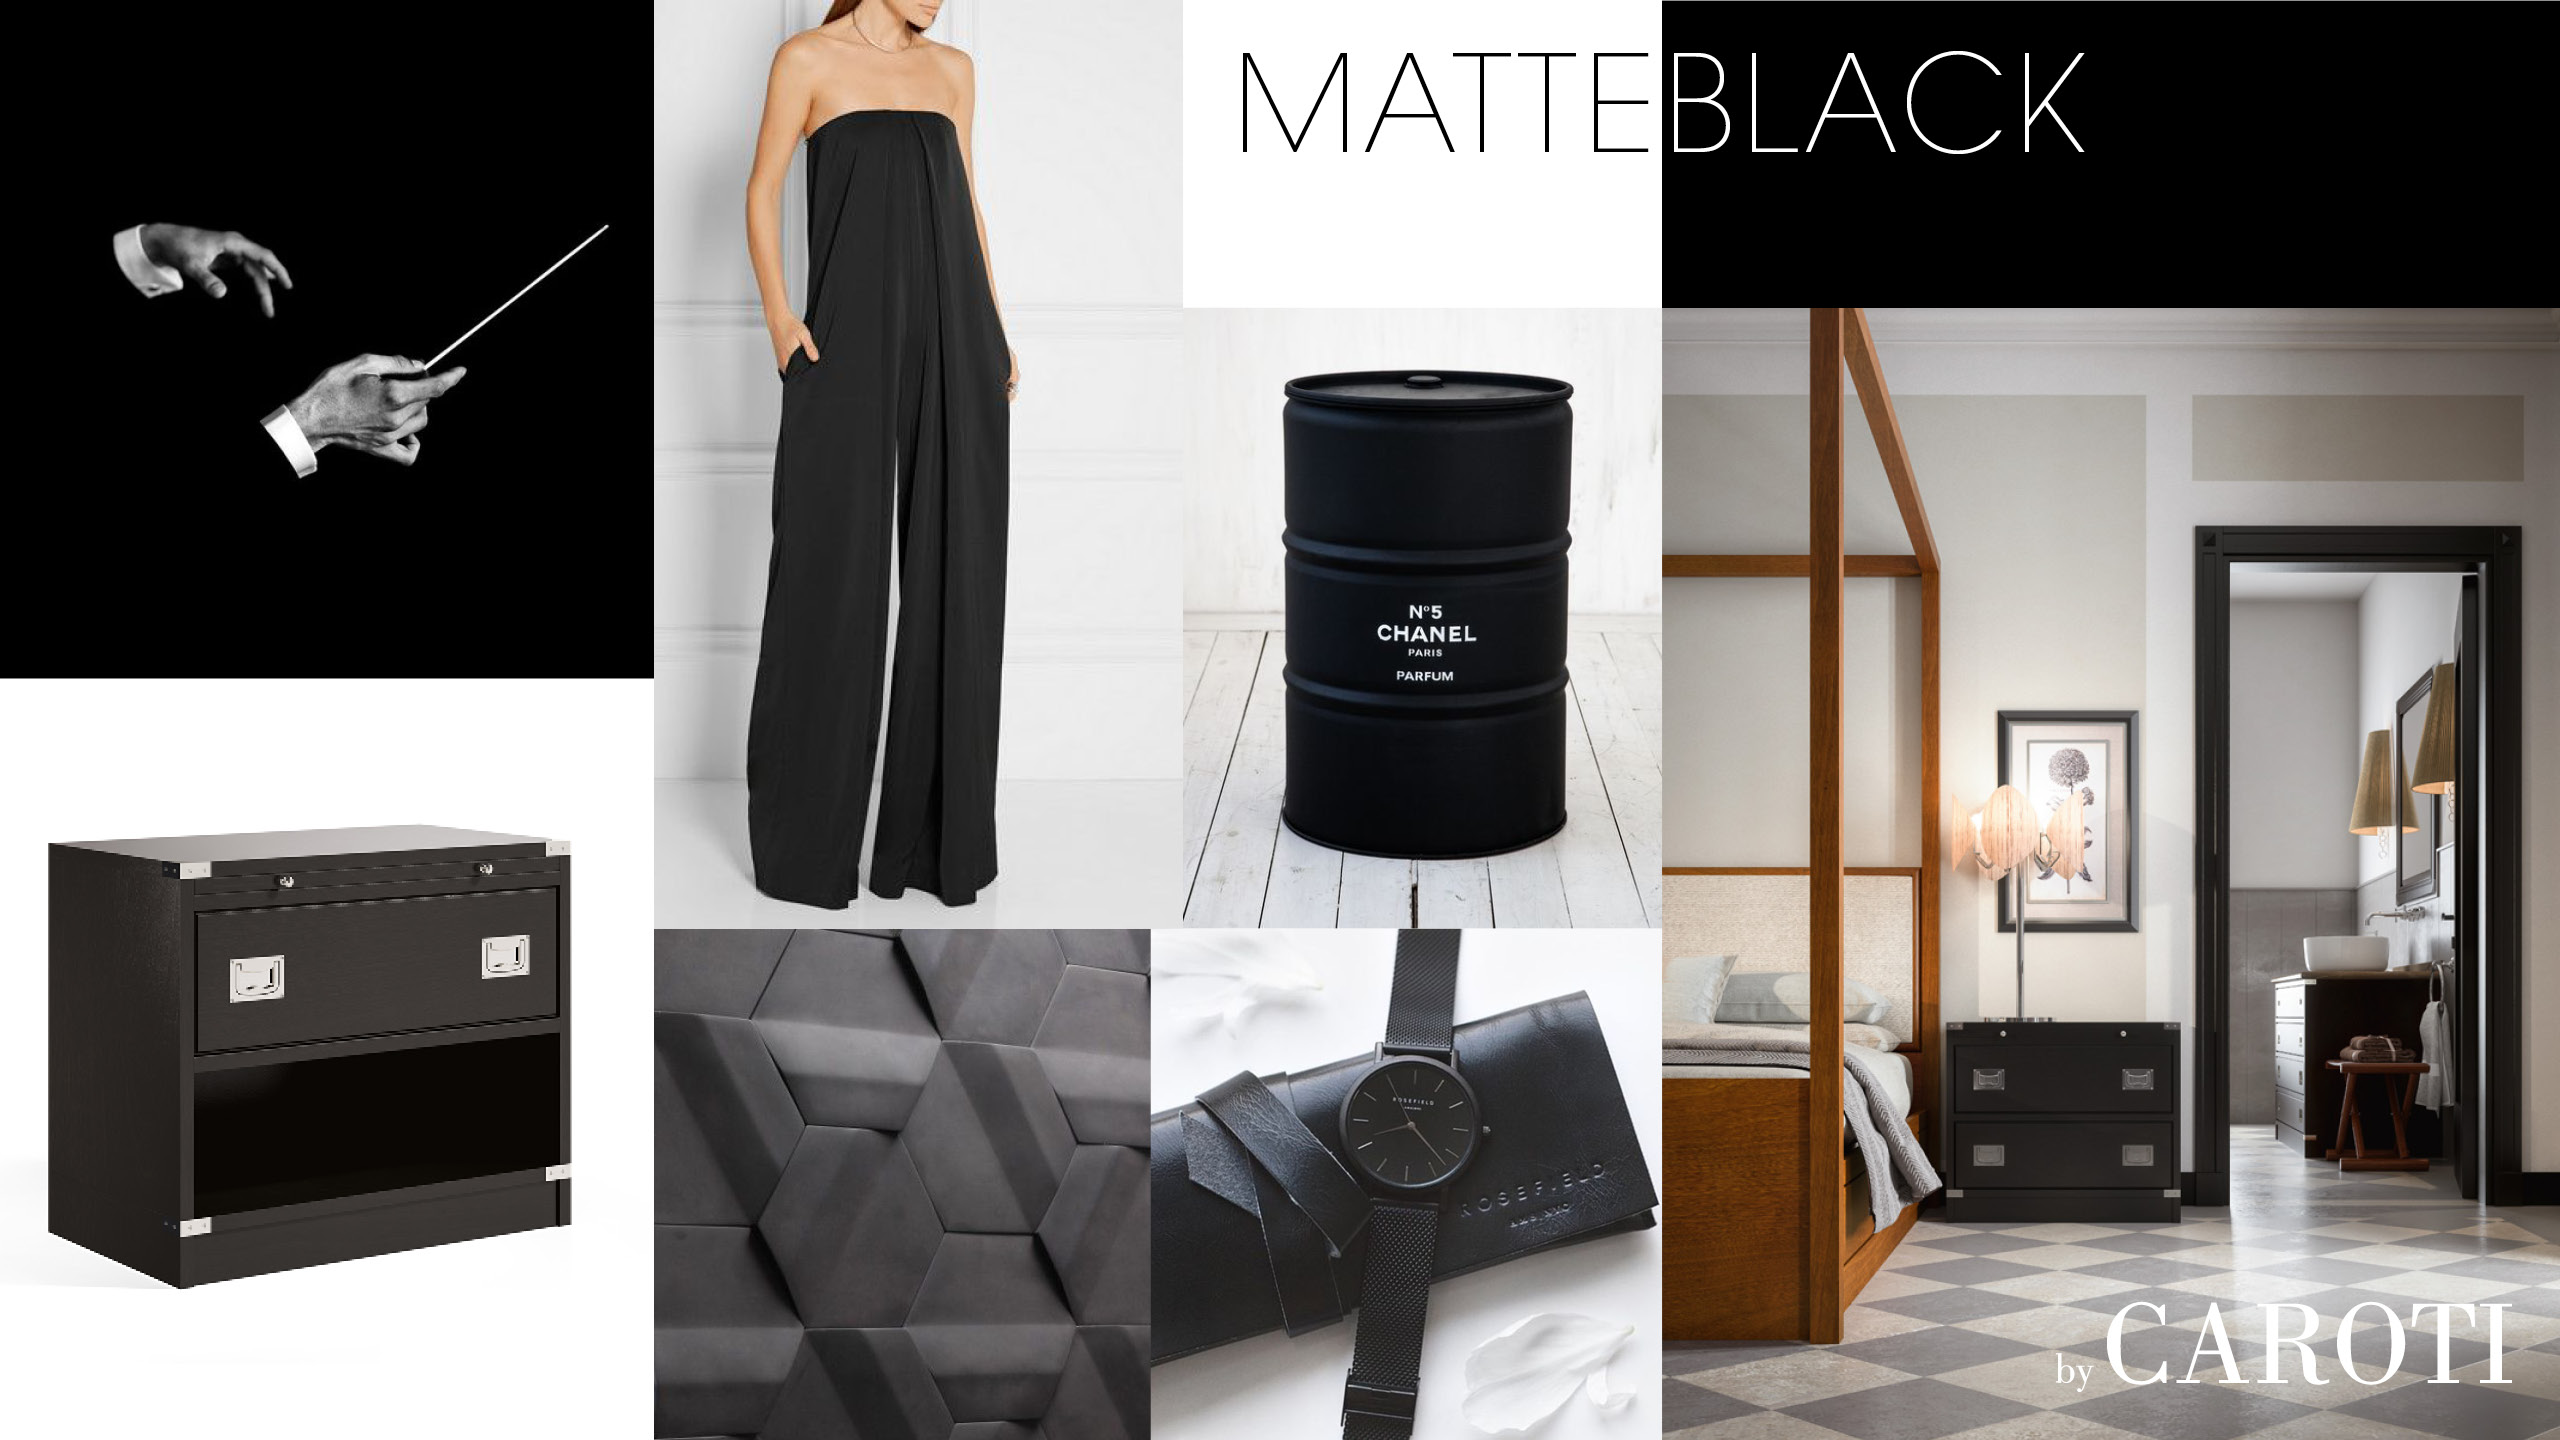 matt black luxury materic bedroom fashion